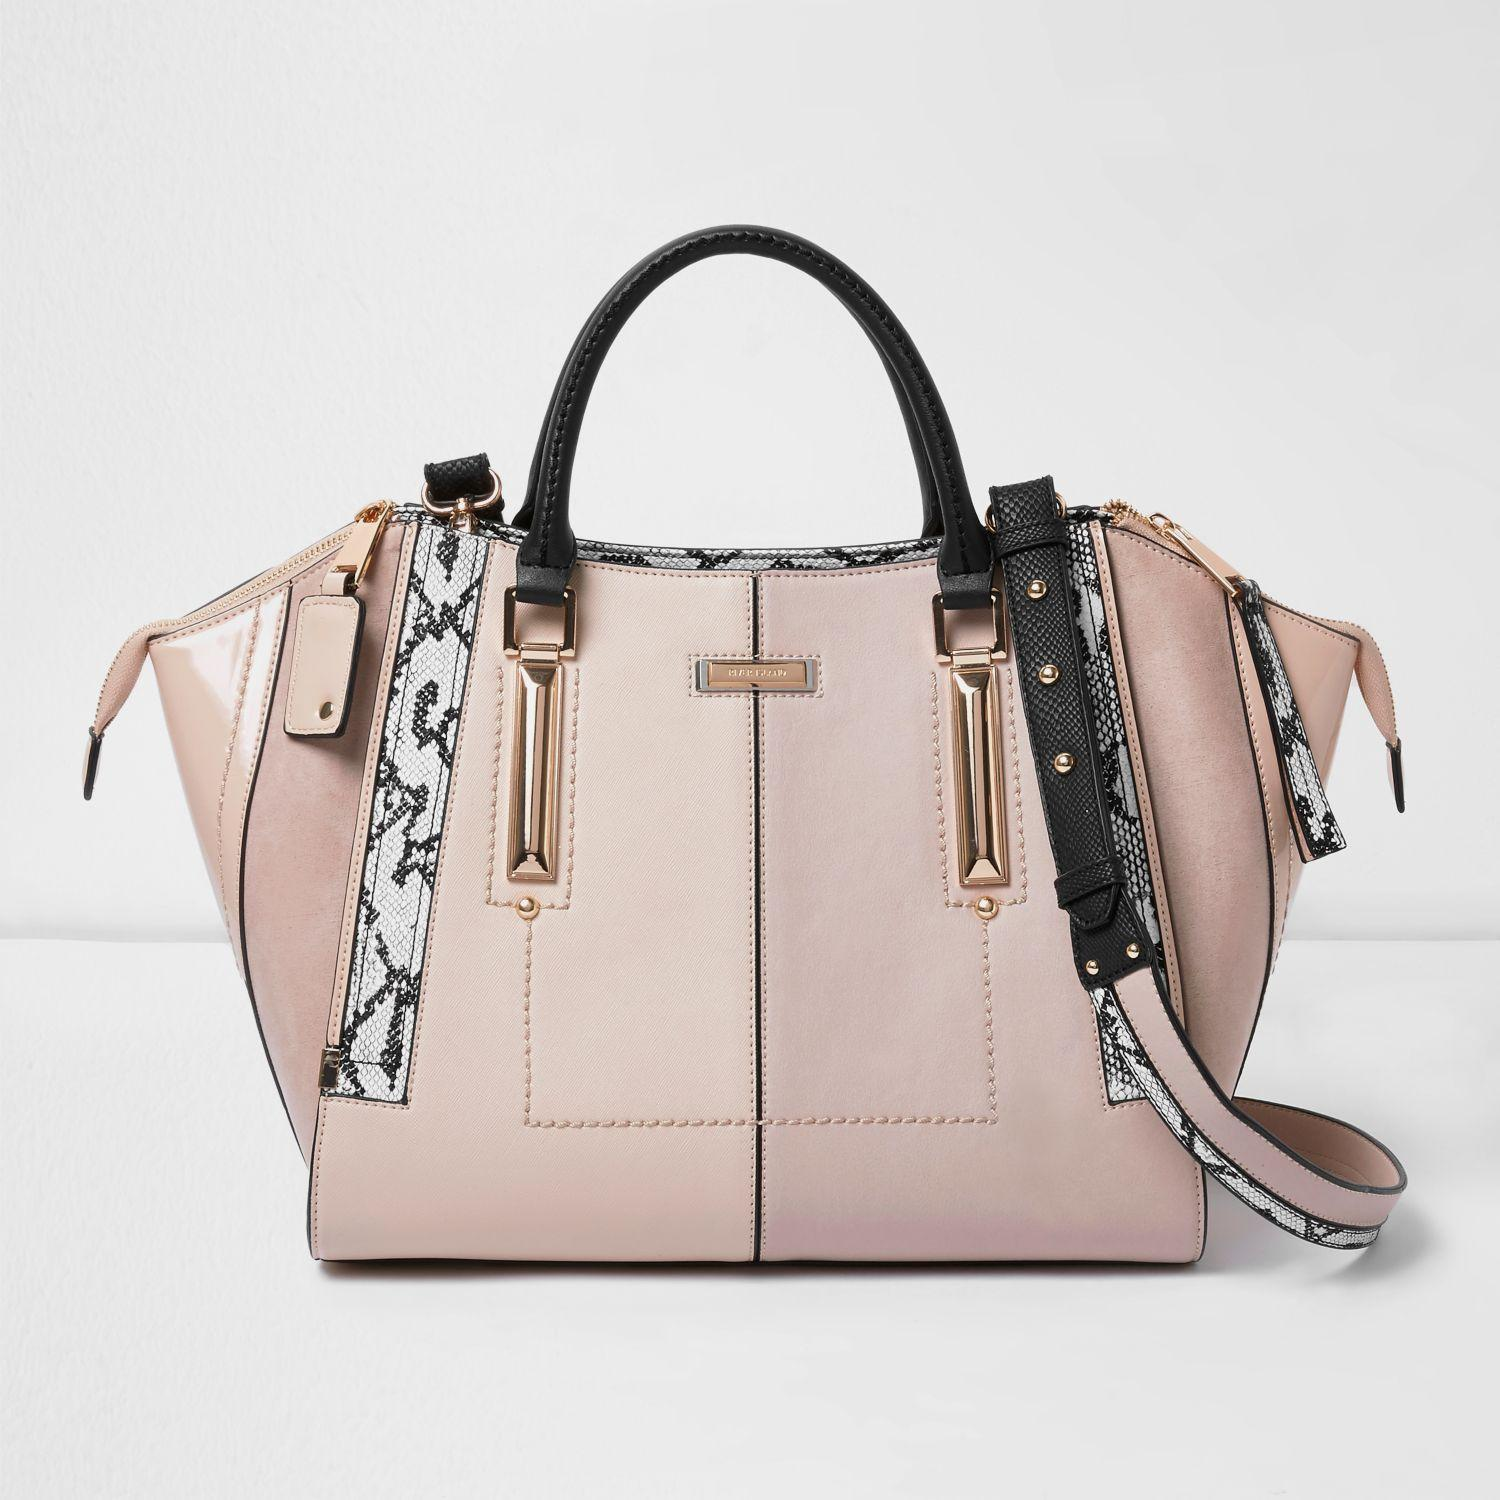 bc46e38168 Lyst - River Island Light Pink Dipped Top Winged Tote Bag in Pink